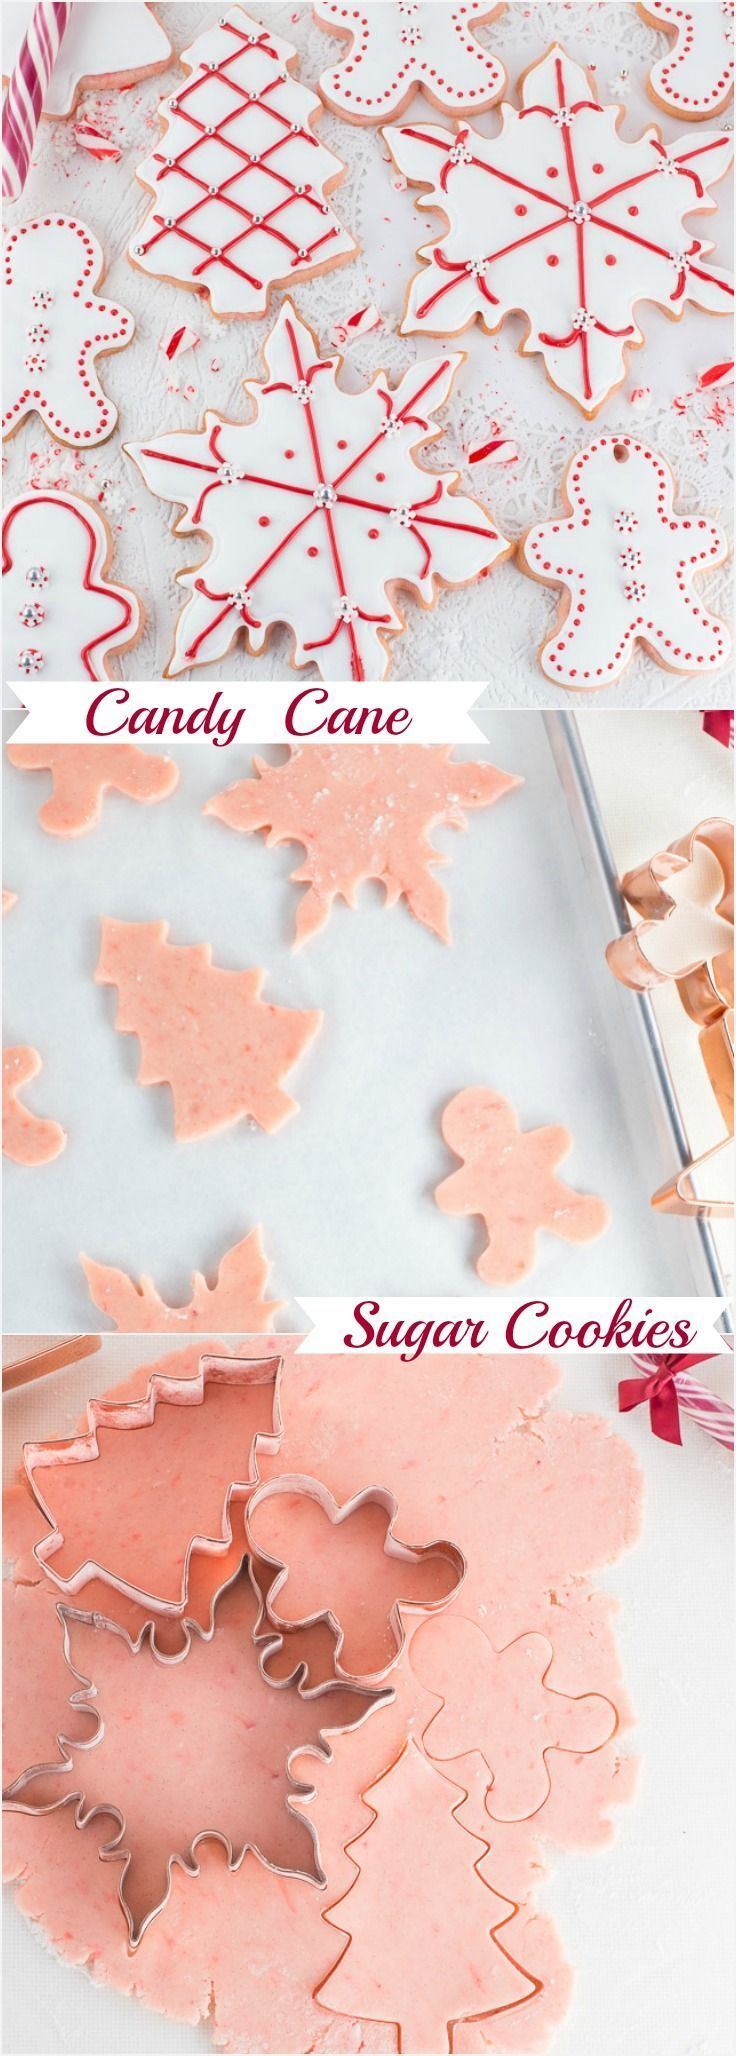 Candy Cane Sugar Cookies #cookies